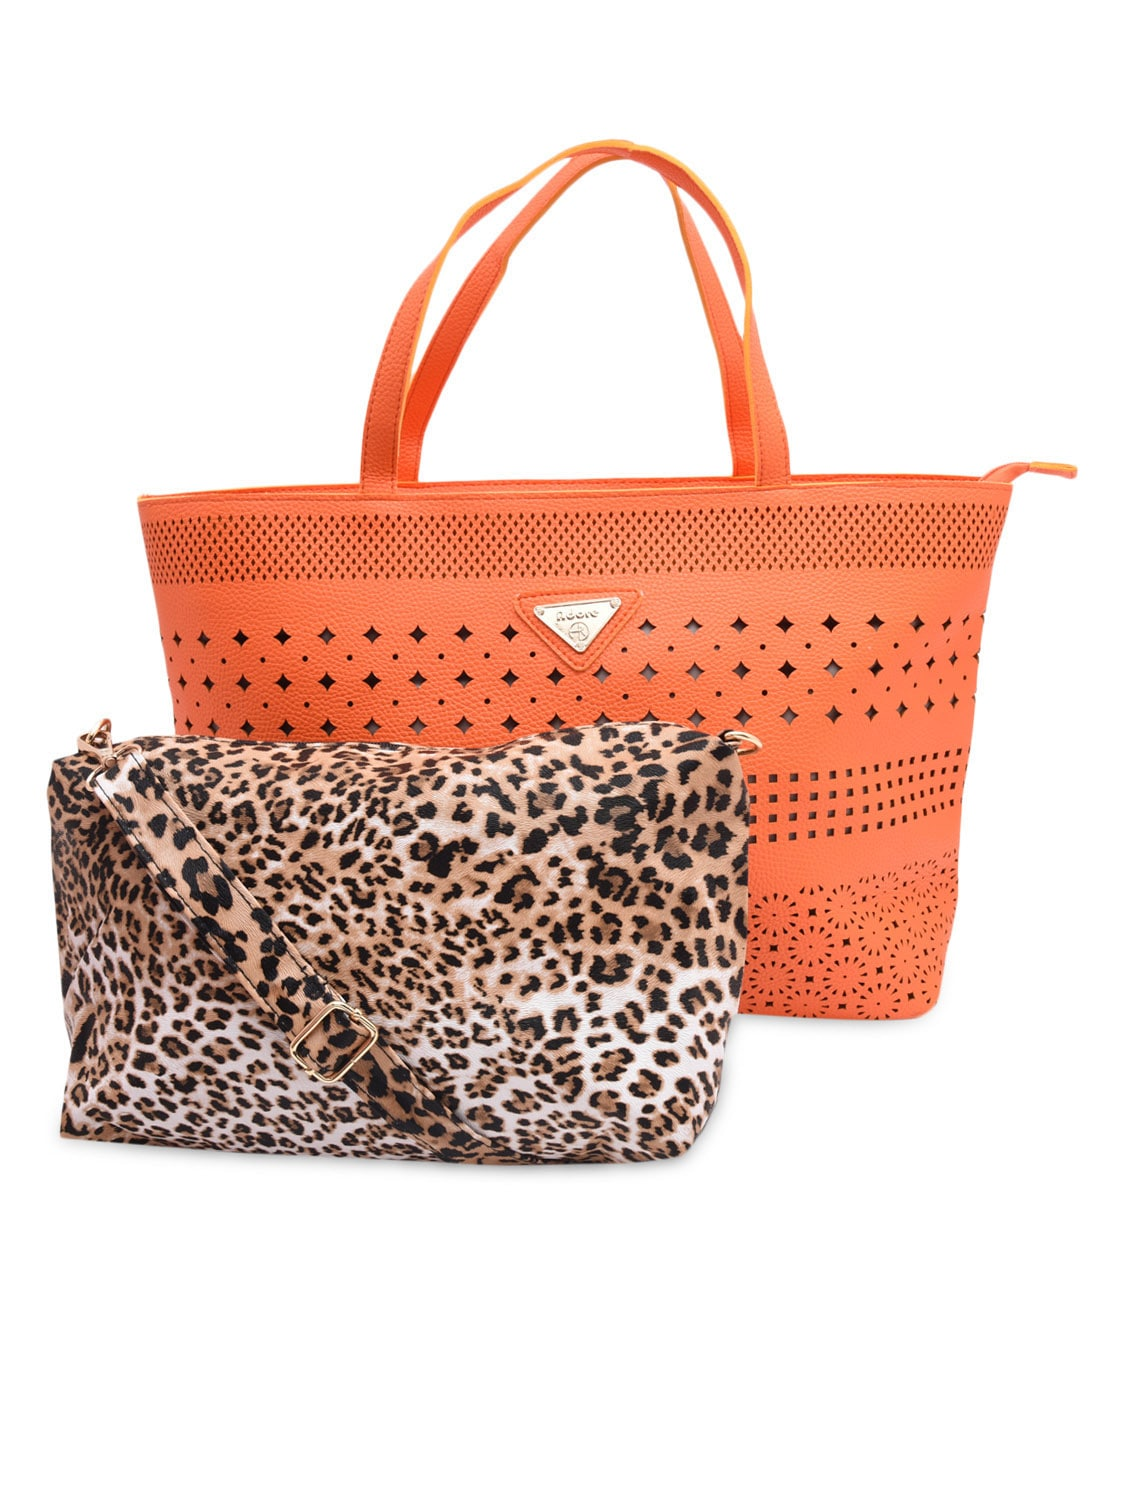 Orange Cut-work Detailed Handbag With Sling Bag - By